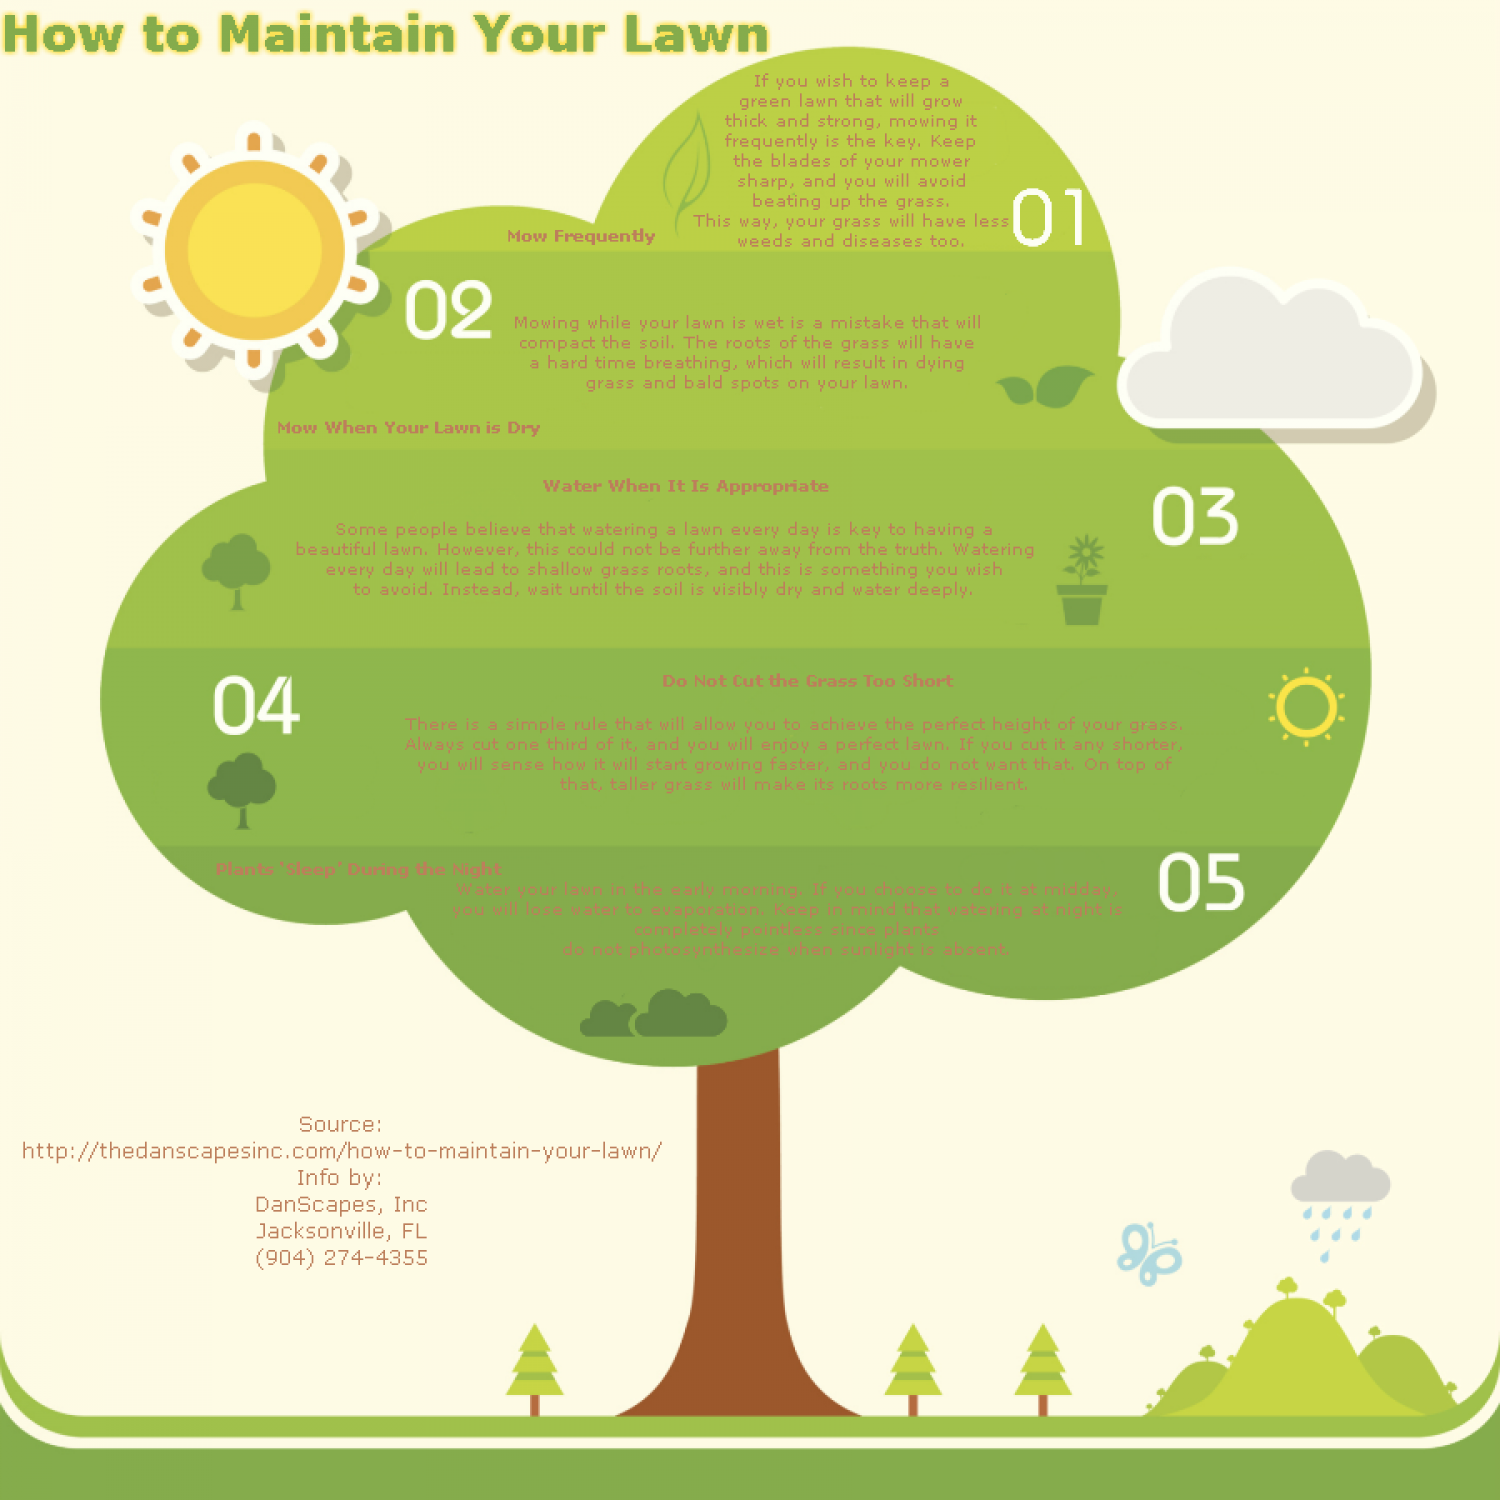 How to Maintain Your Lawn Infographic